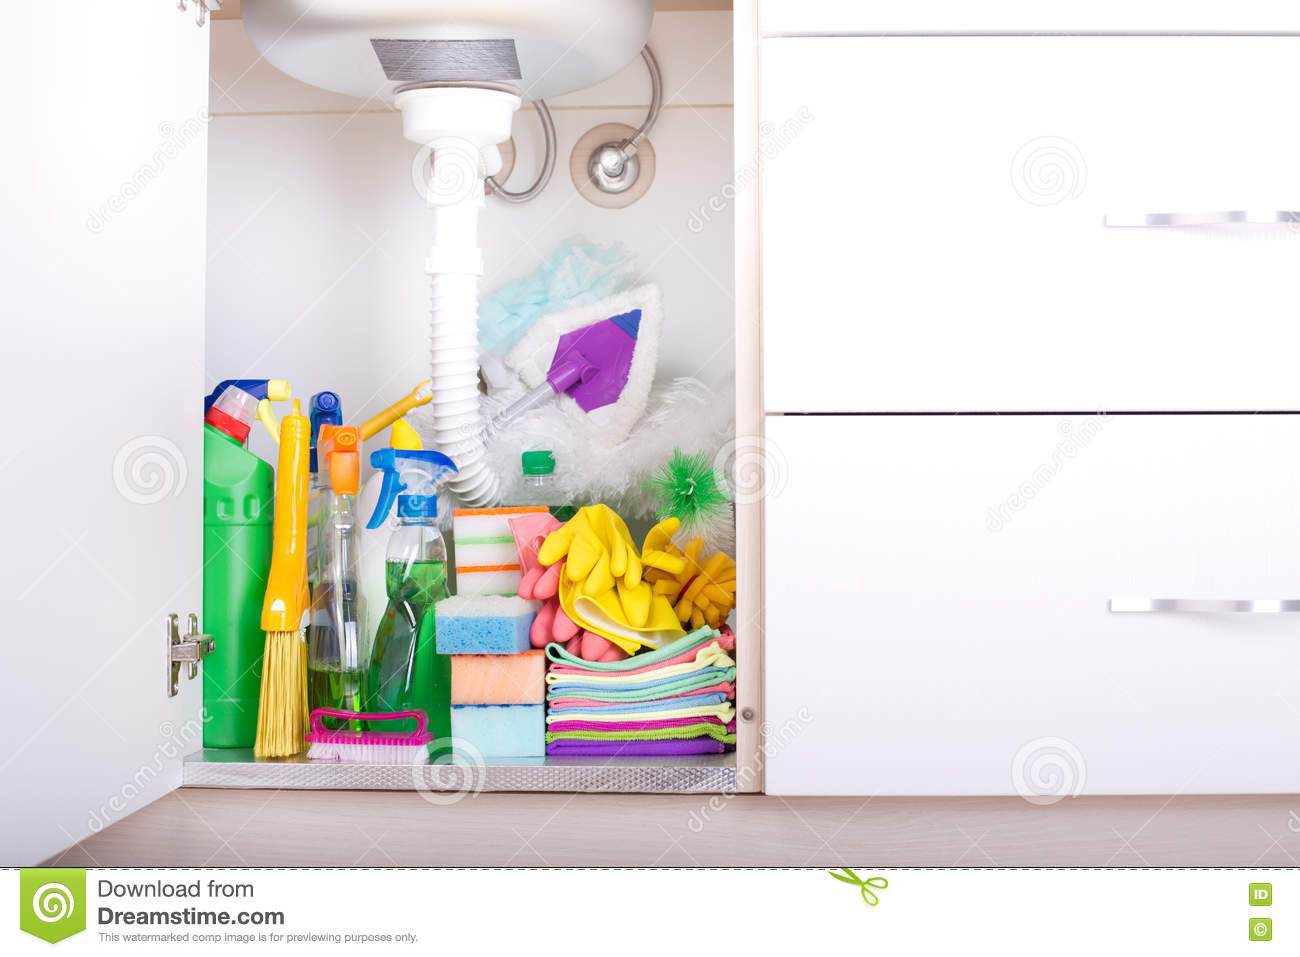 Cleaning Supplies In Kitchen Cabinet Stock Photo Image Of Object